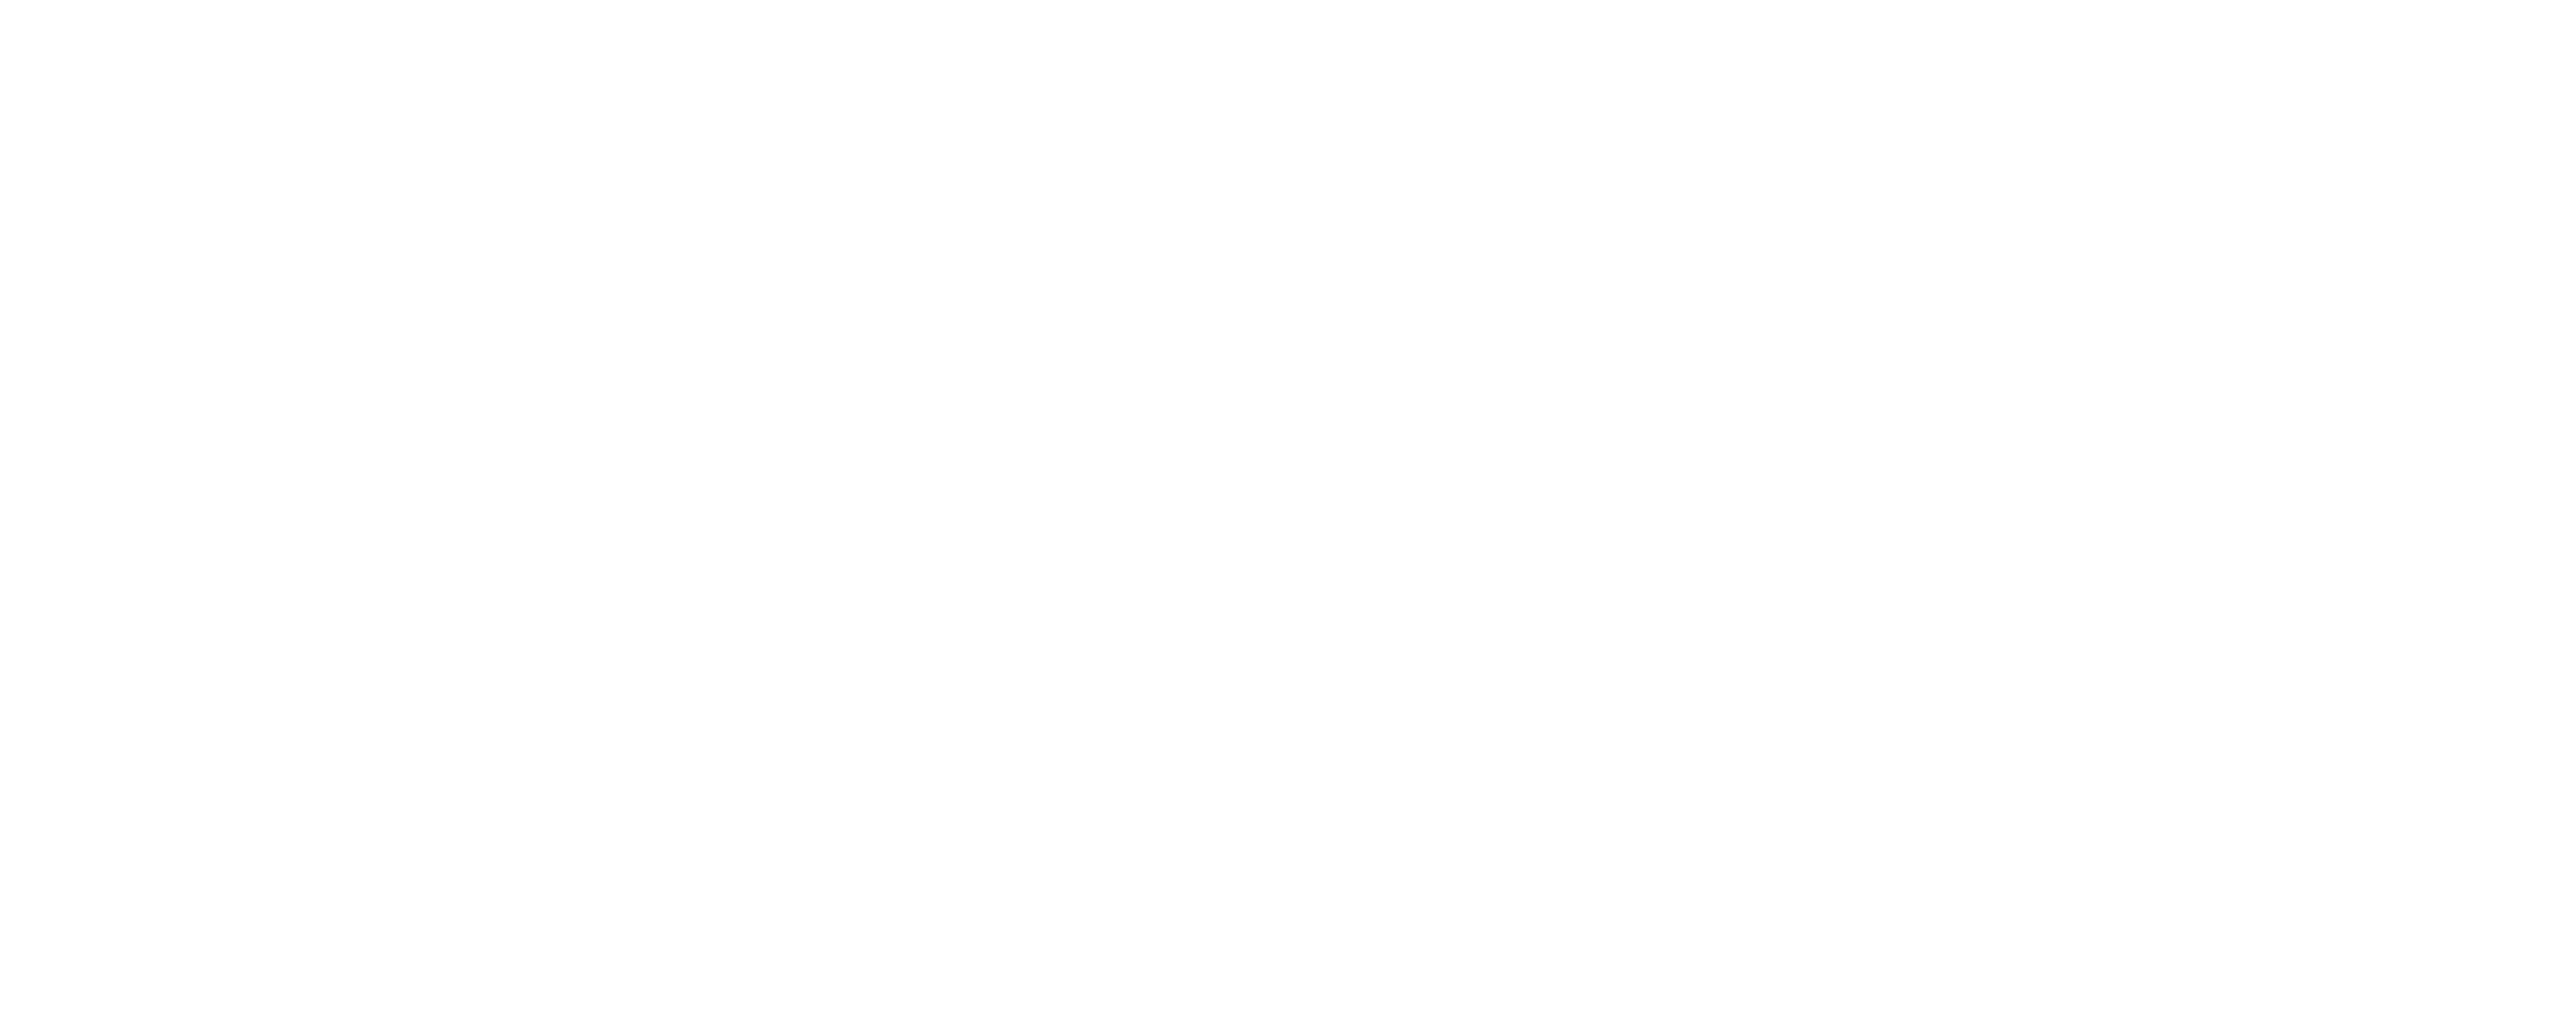 Black lace png. And white product pattern